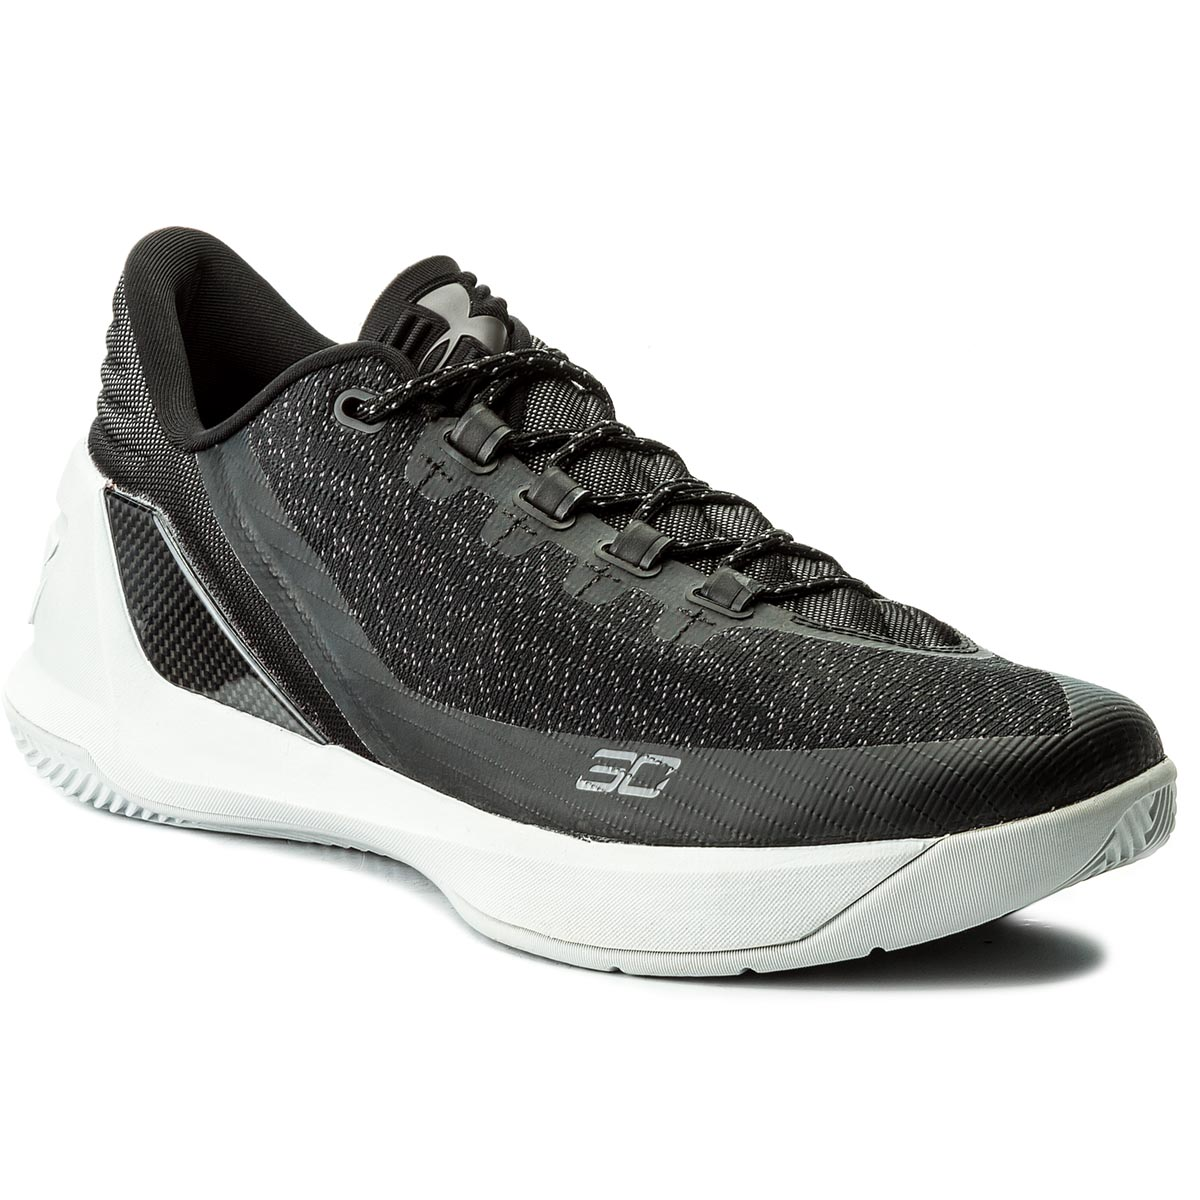 Buty UNDER ARMOUR - Ua Curry 3 Low 1286376-001 Blk/Wht/Wht